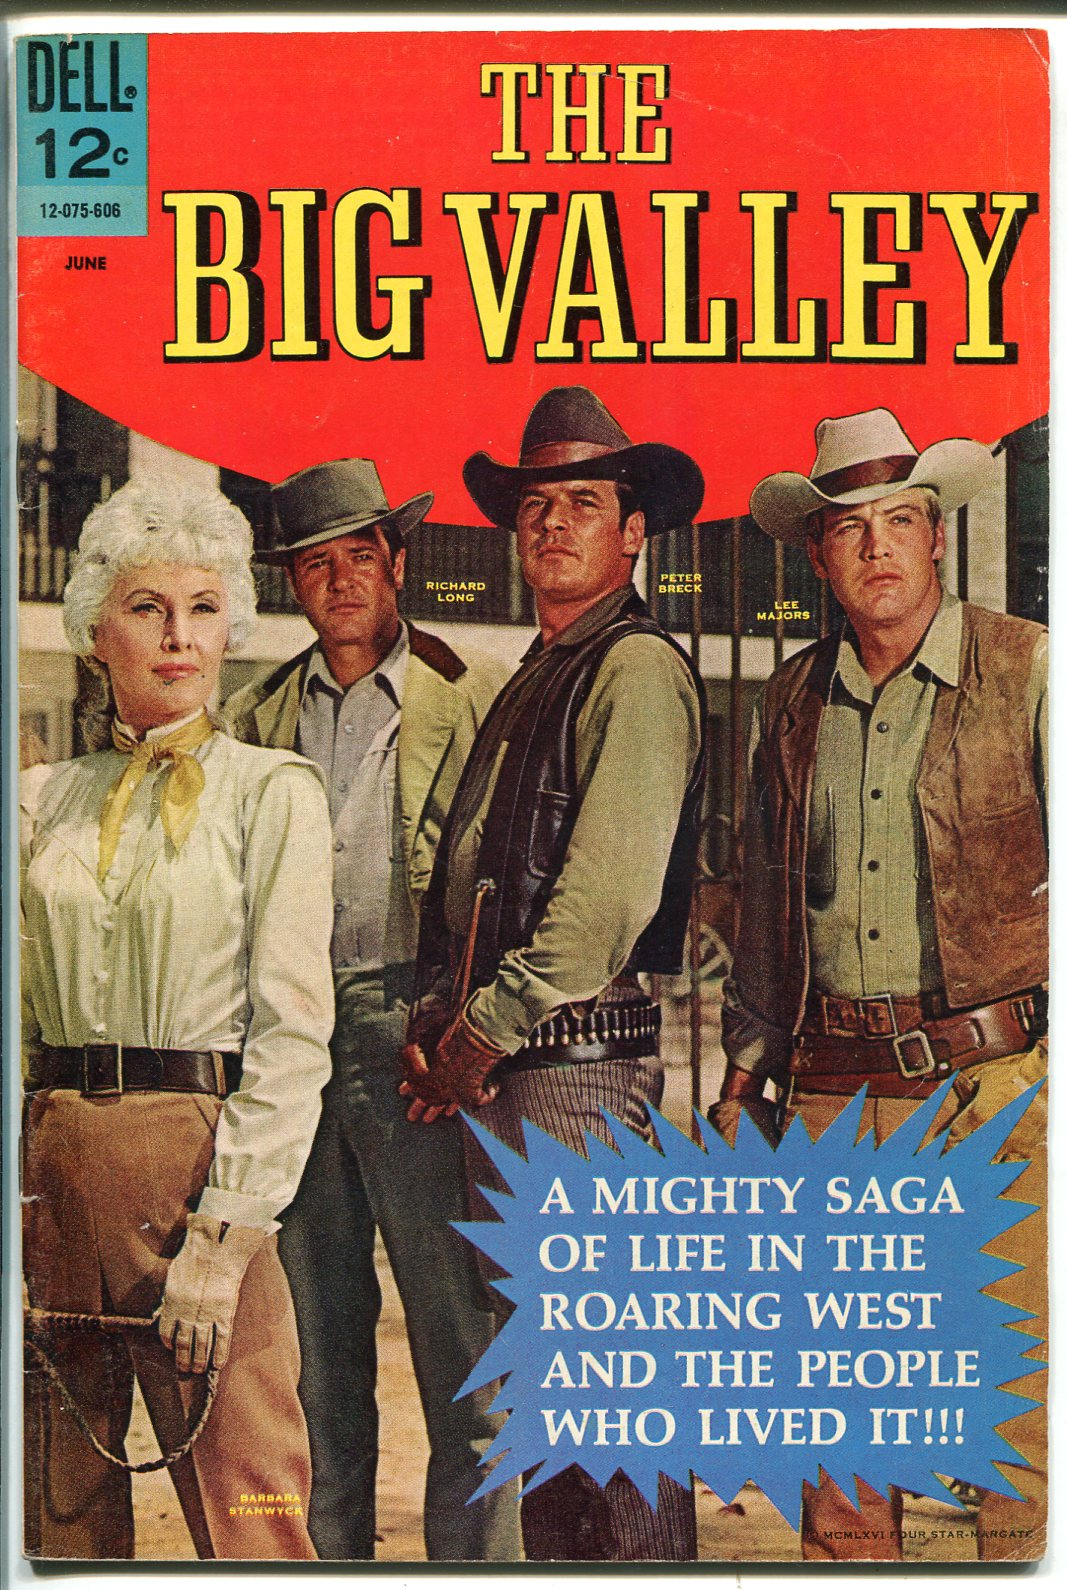 Big Valley #1 1966-Dell-Barbara Stanwyck-Lee Majors-Peter Breck-1st issue-VF- As New